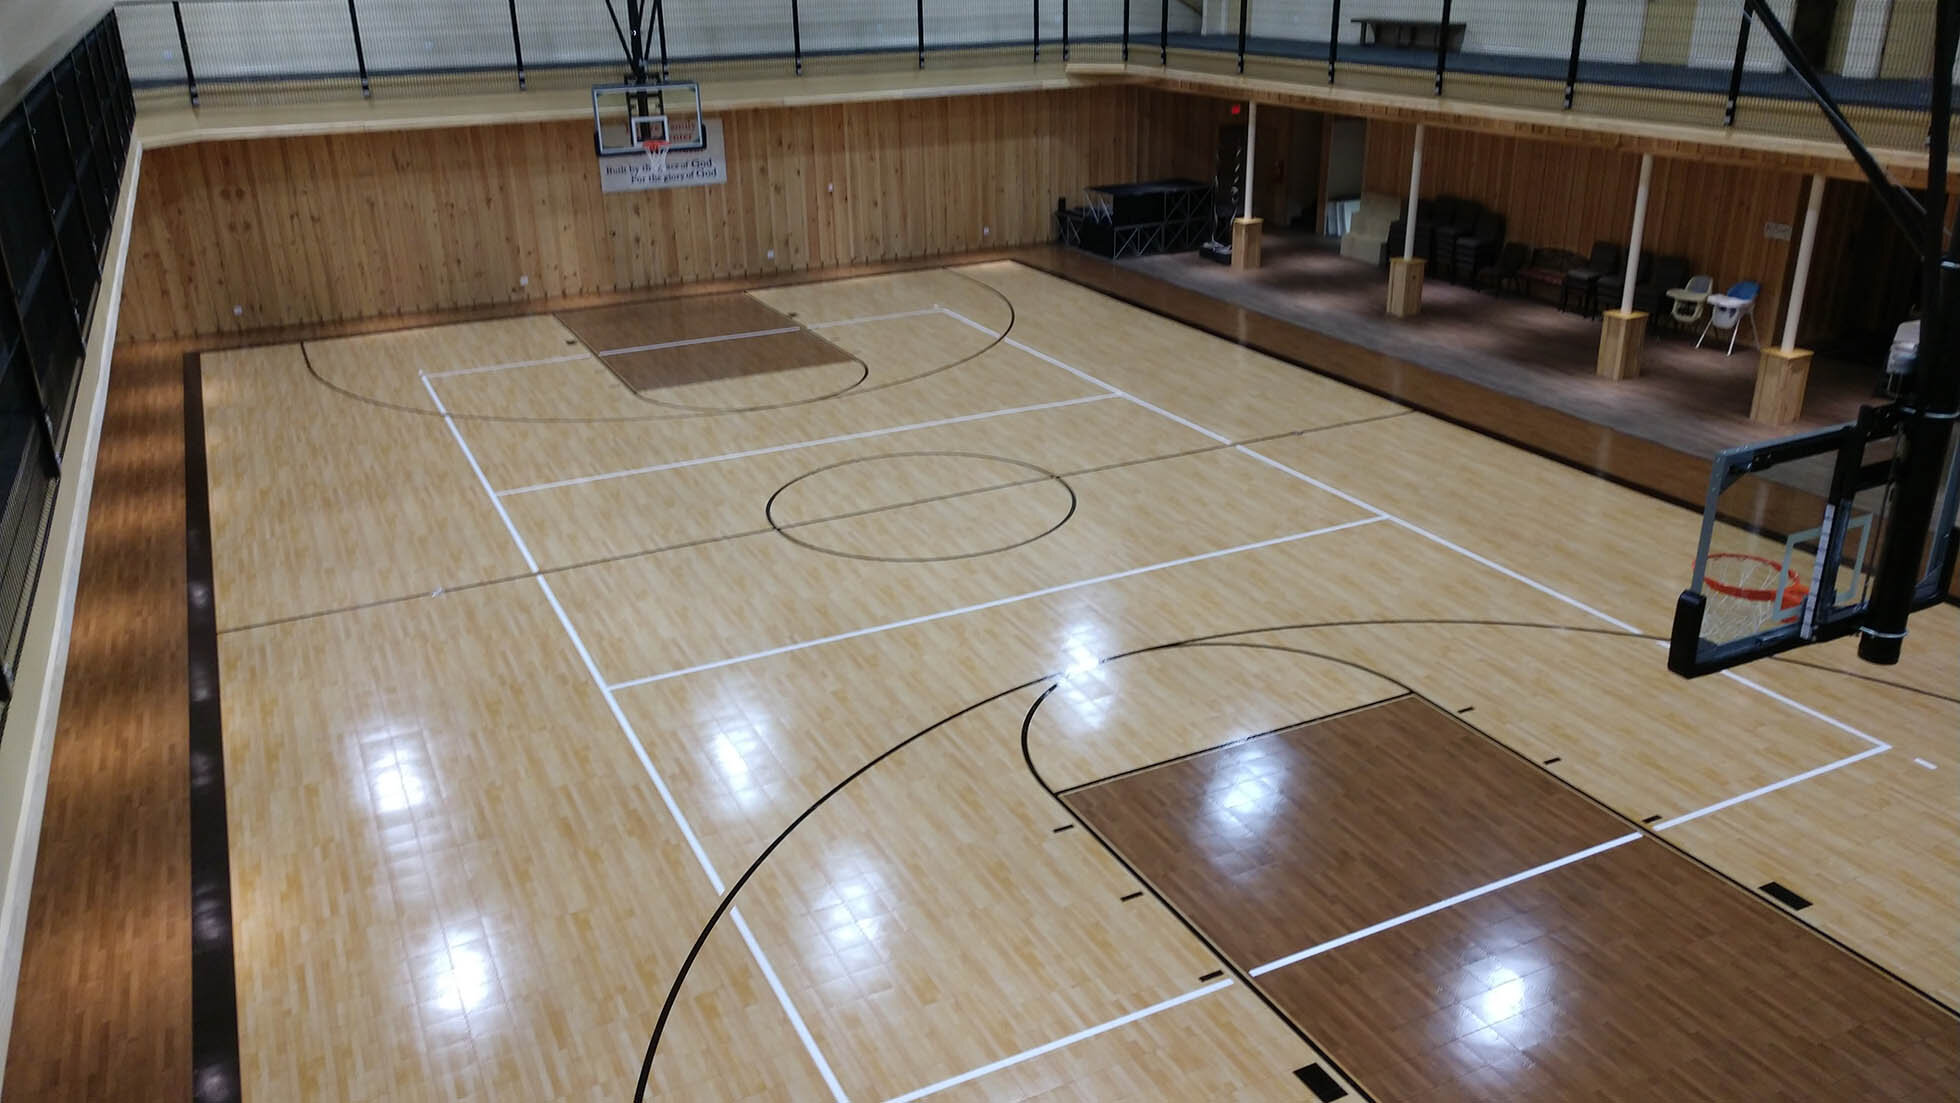 Church Basketball Court